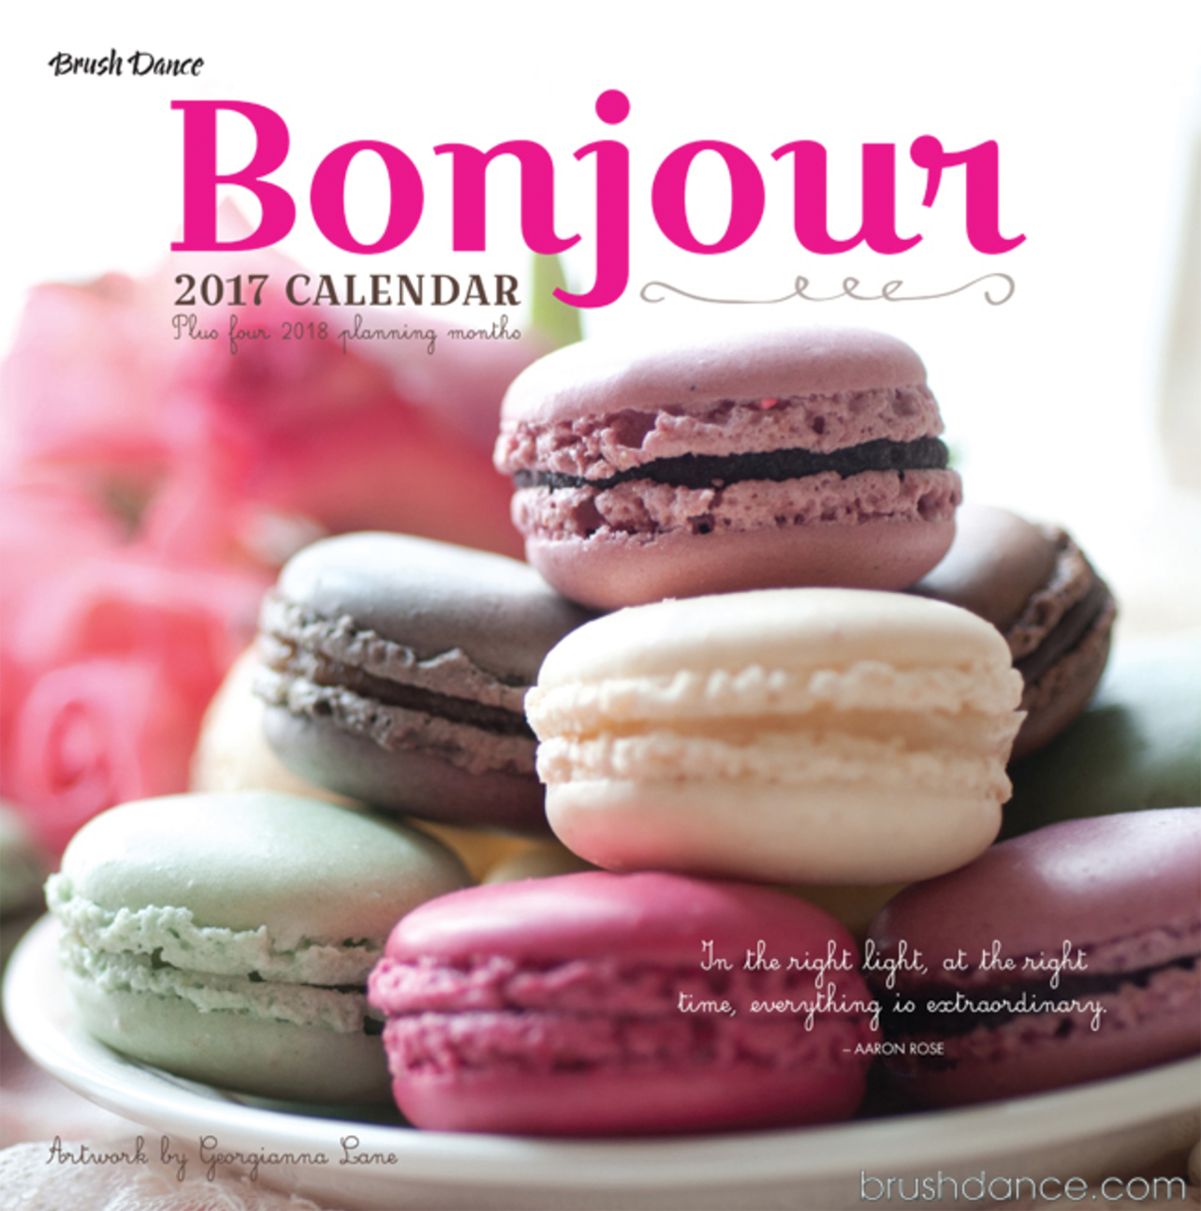 Bonjour 2017 Calendar by Georgianna Lane